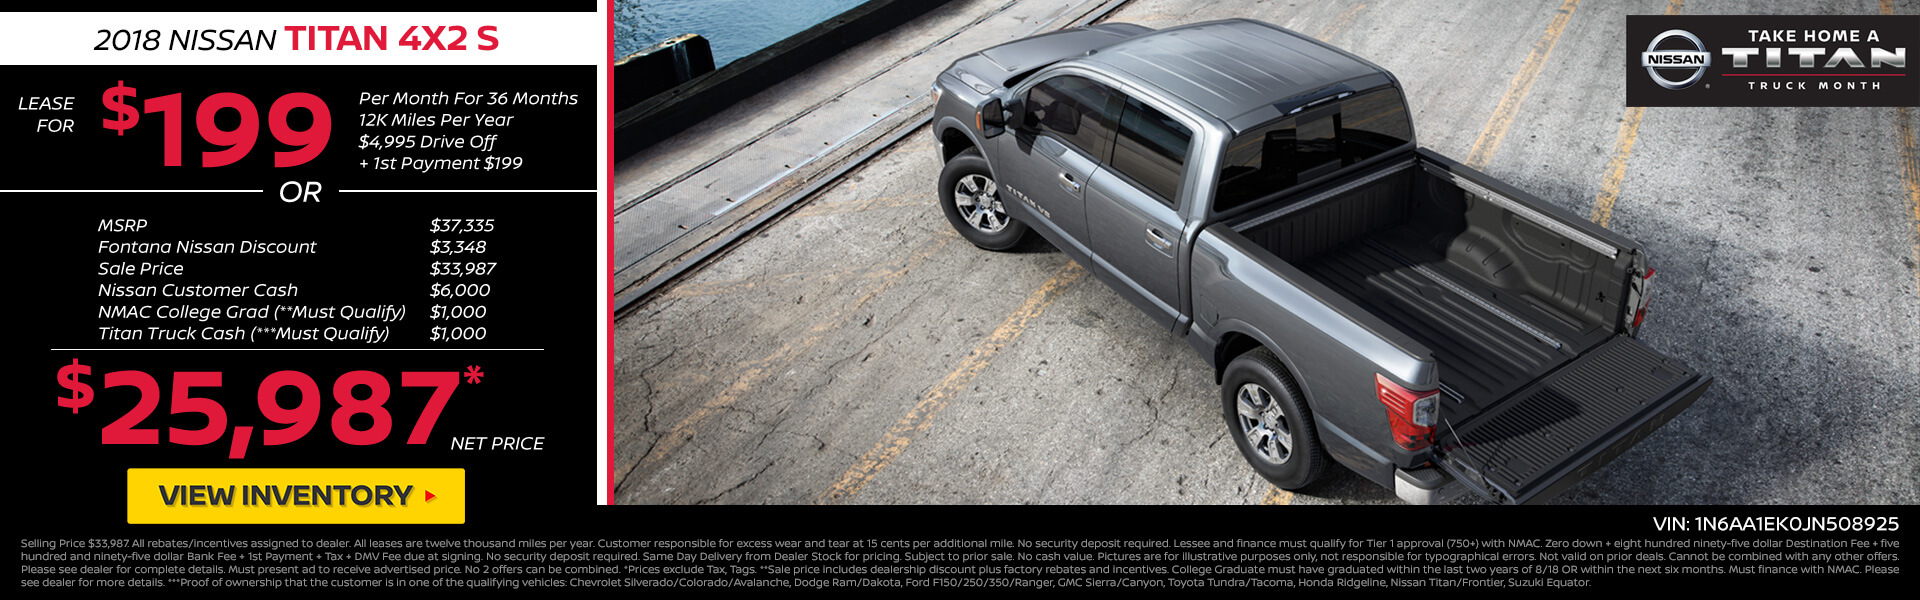 Nissan Titan $199 Lease or $25,987 Purchase